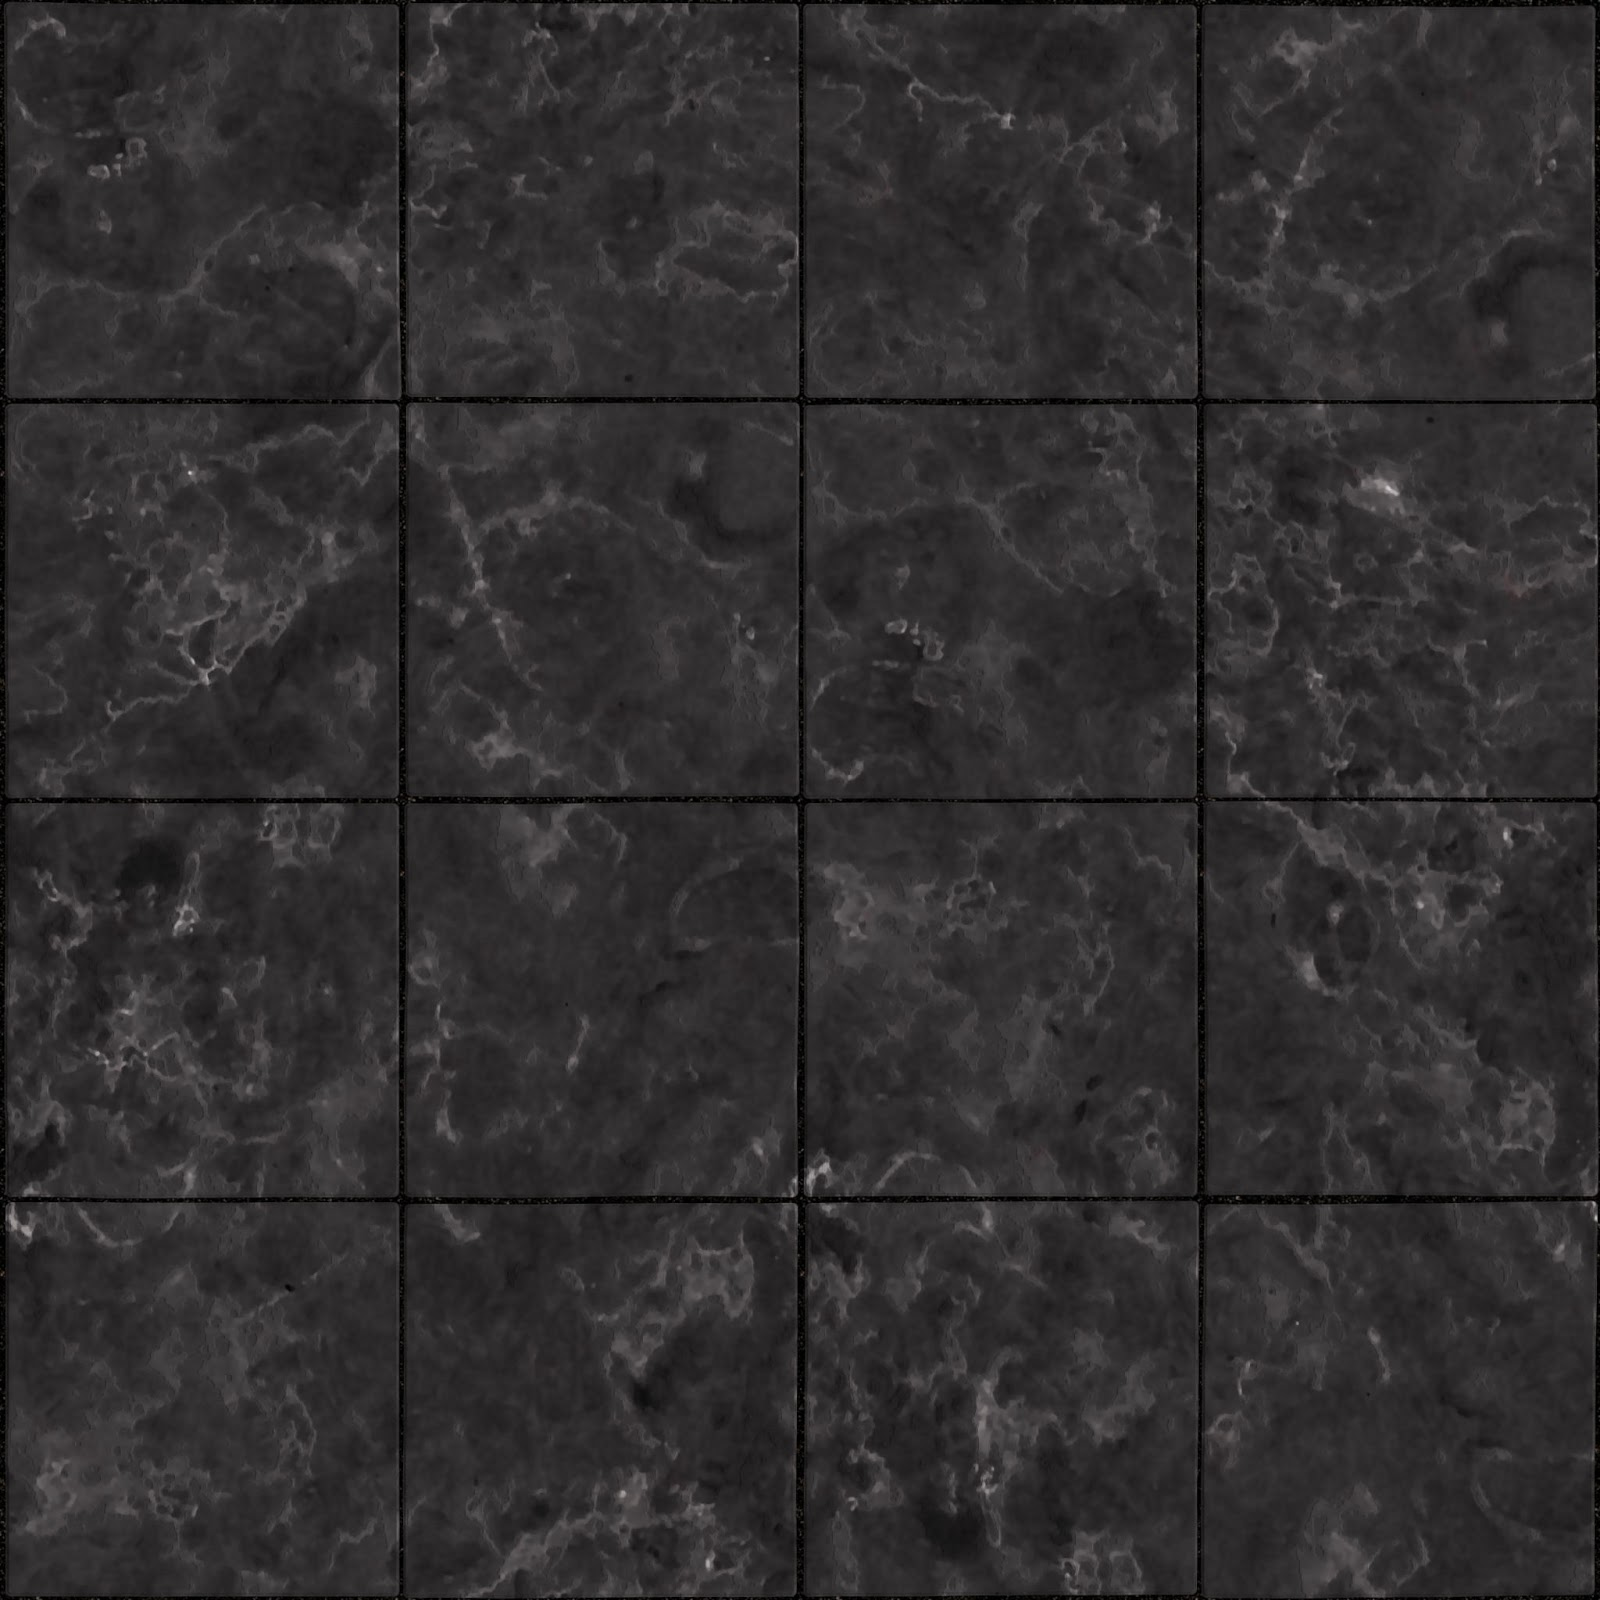 High Resolution Seamless Textures: Marble